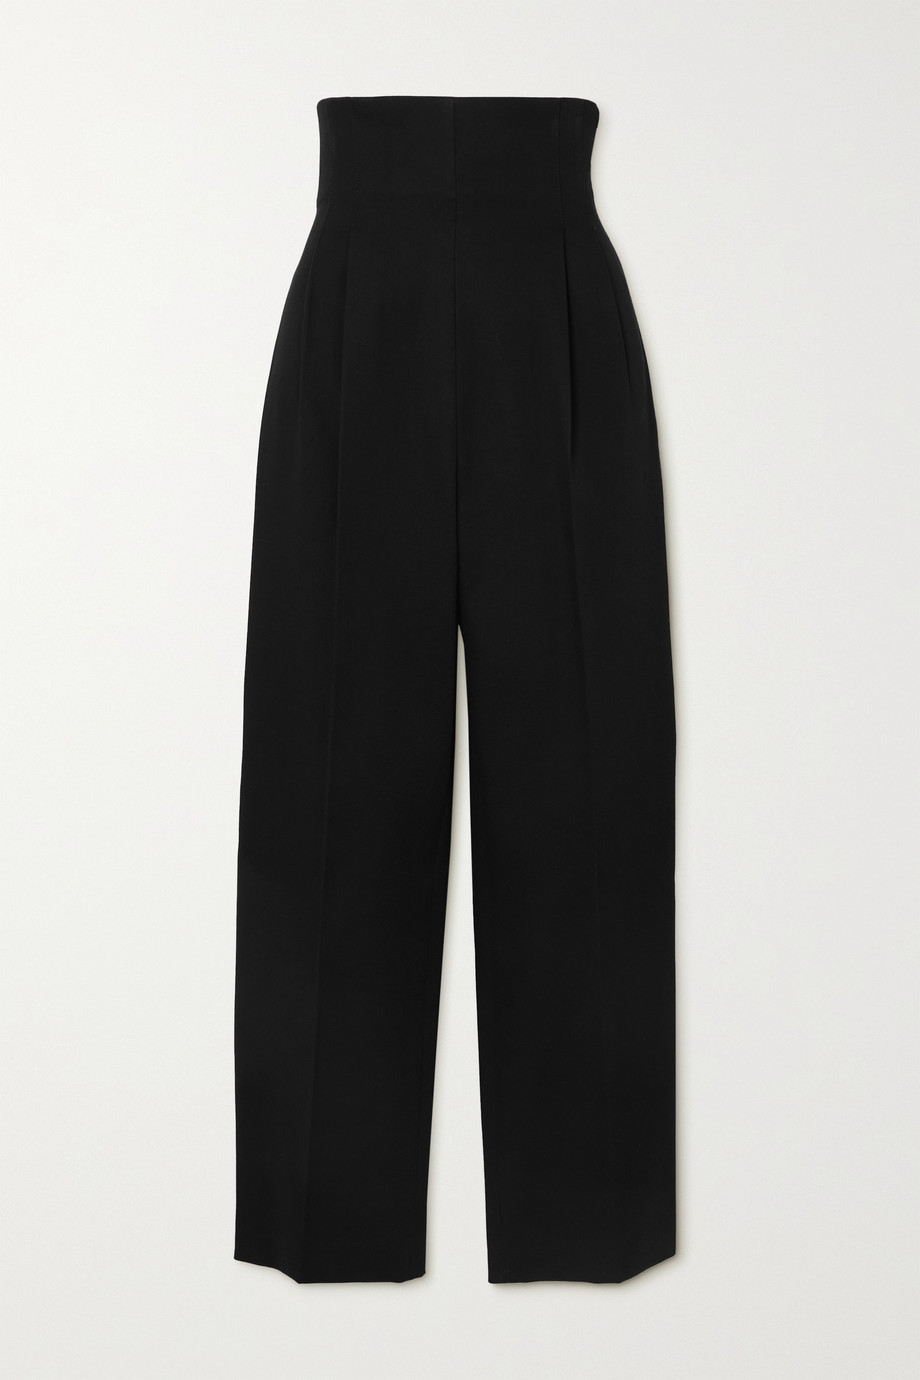 Alaïa Cotton-gabardine straight-leg pants